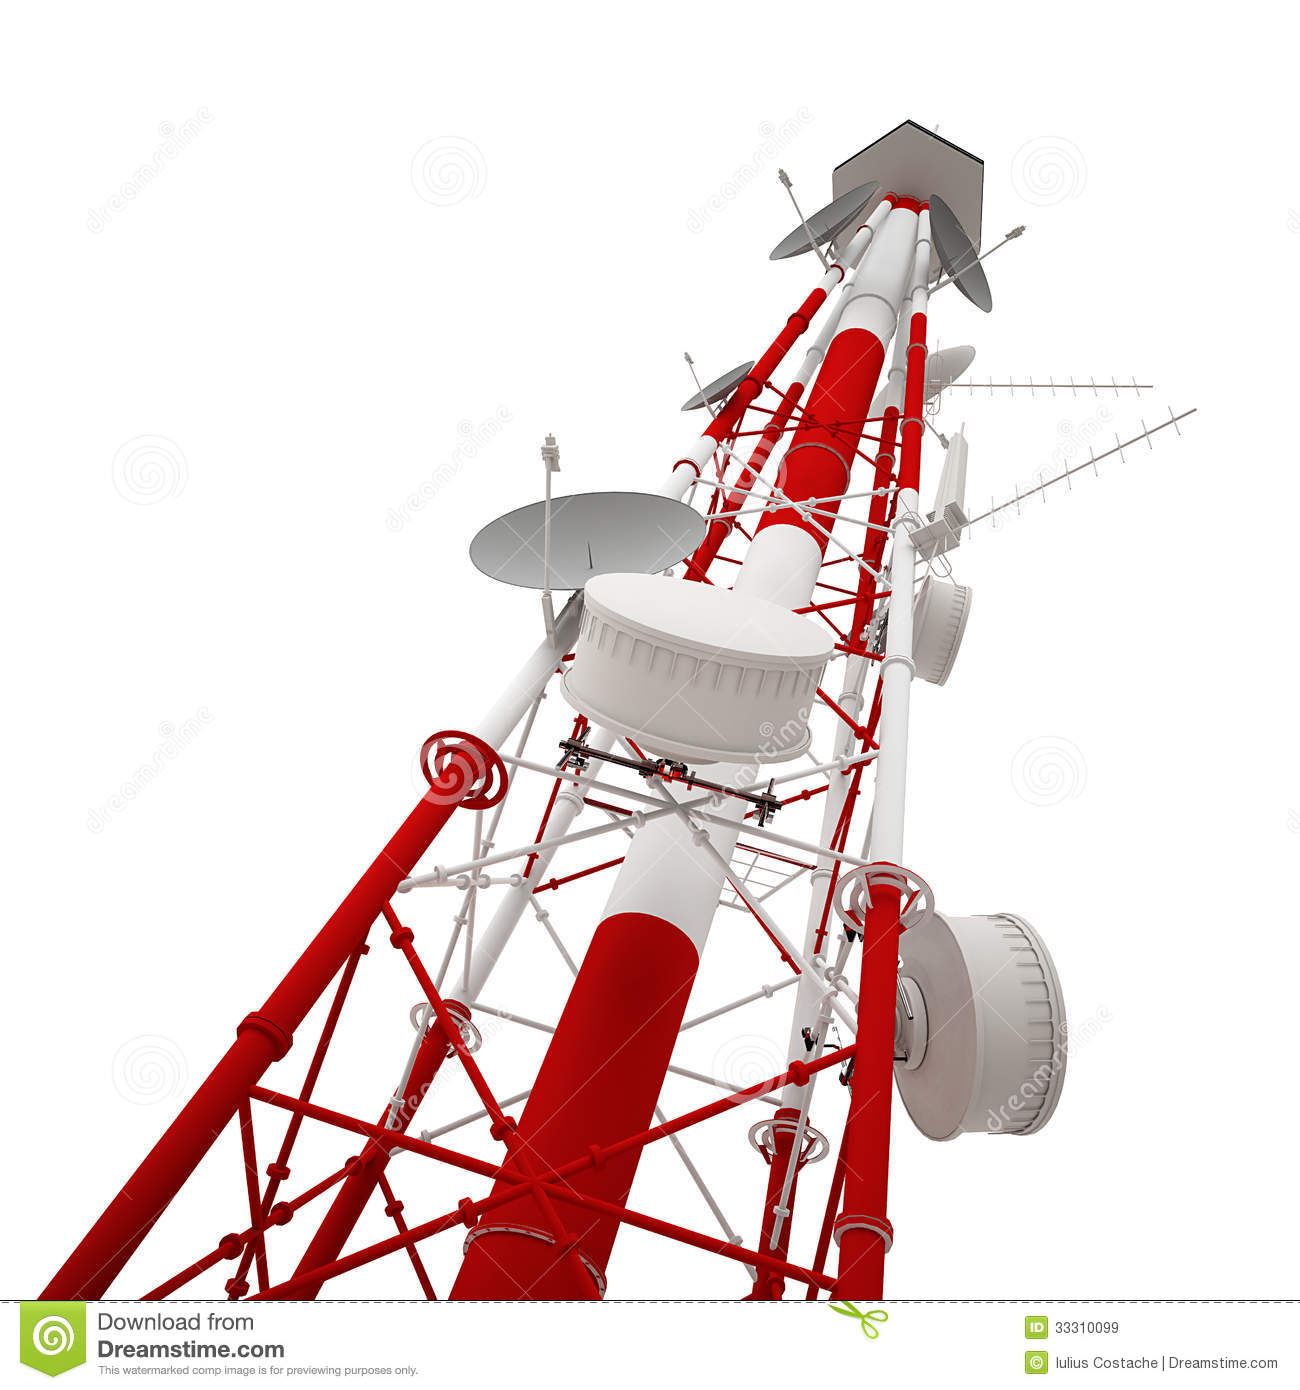 cellular phone tower signal diagram ford 8n wiring 6 volt radio stock illustration image of technology